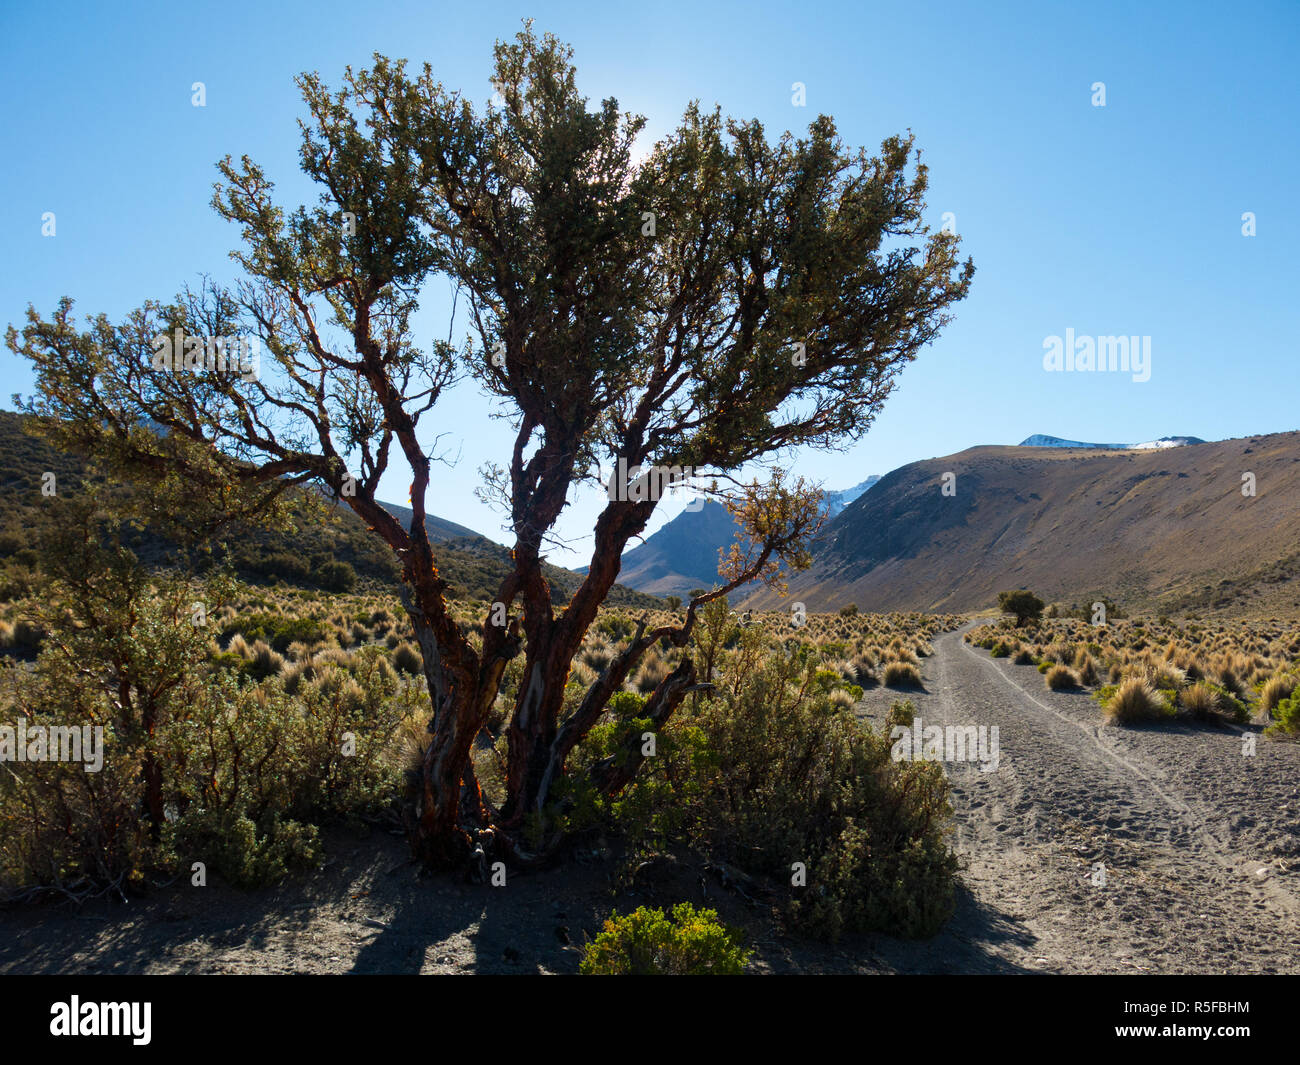 Quenoa forest, Polylepis tarapacana, the only vegetation that grows at 4000 meters altitude. It is considered one of the highest forests of the world. - Stock Image